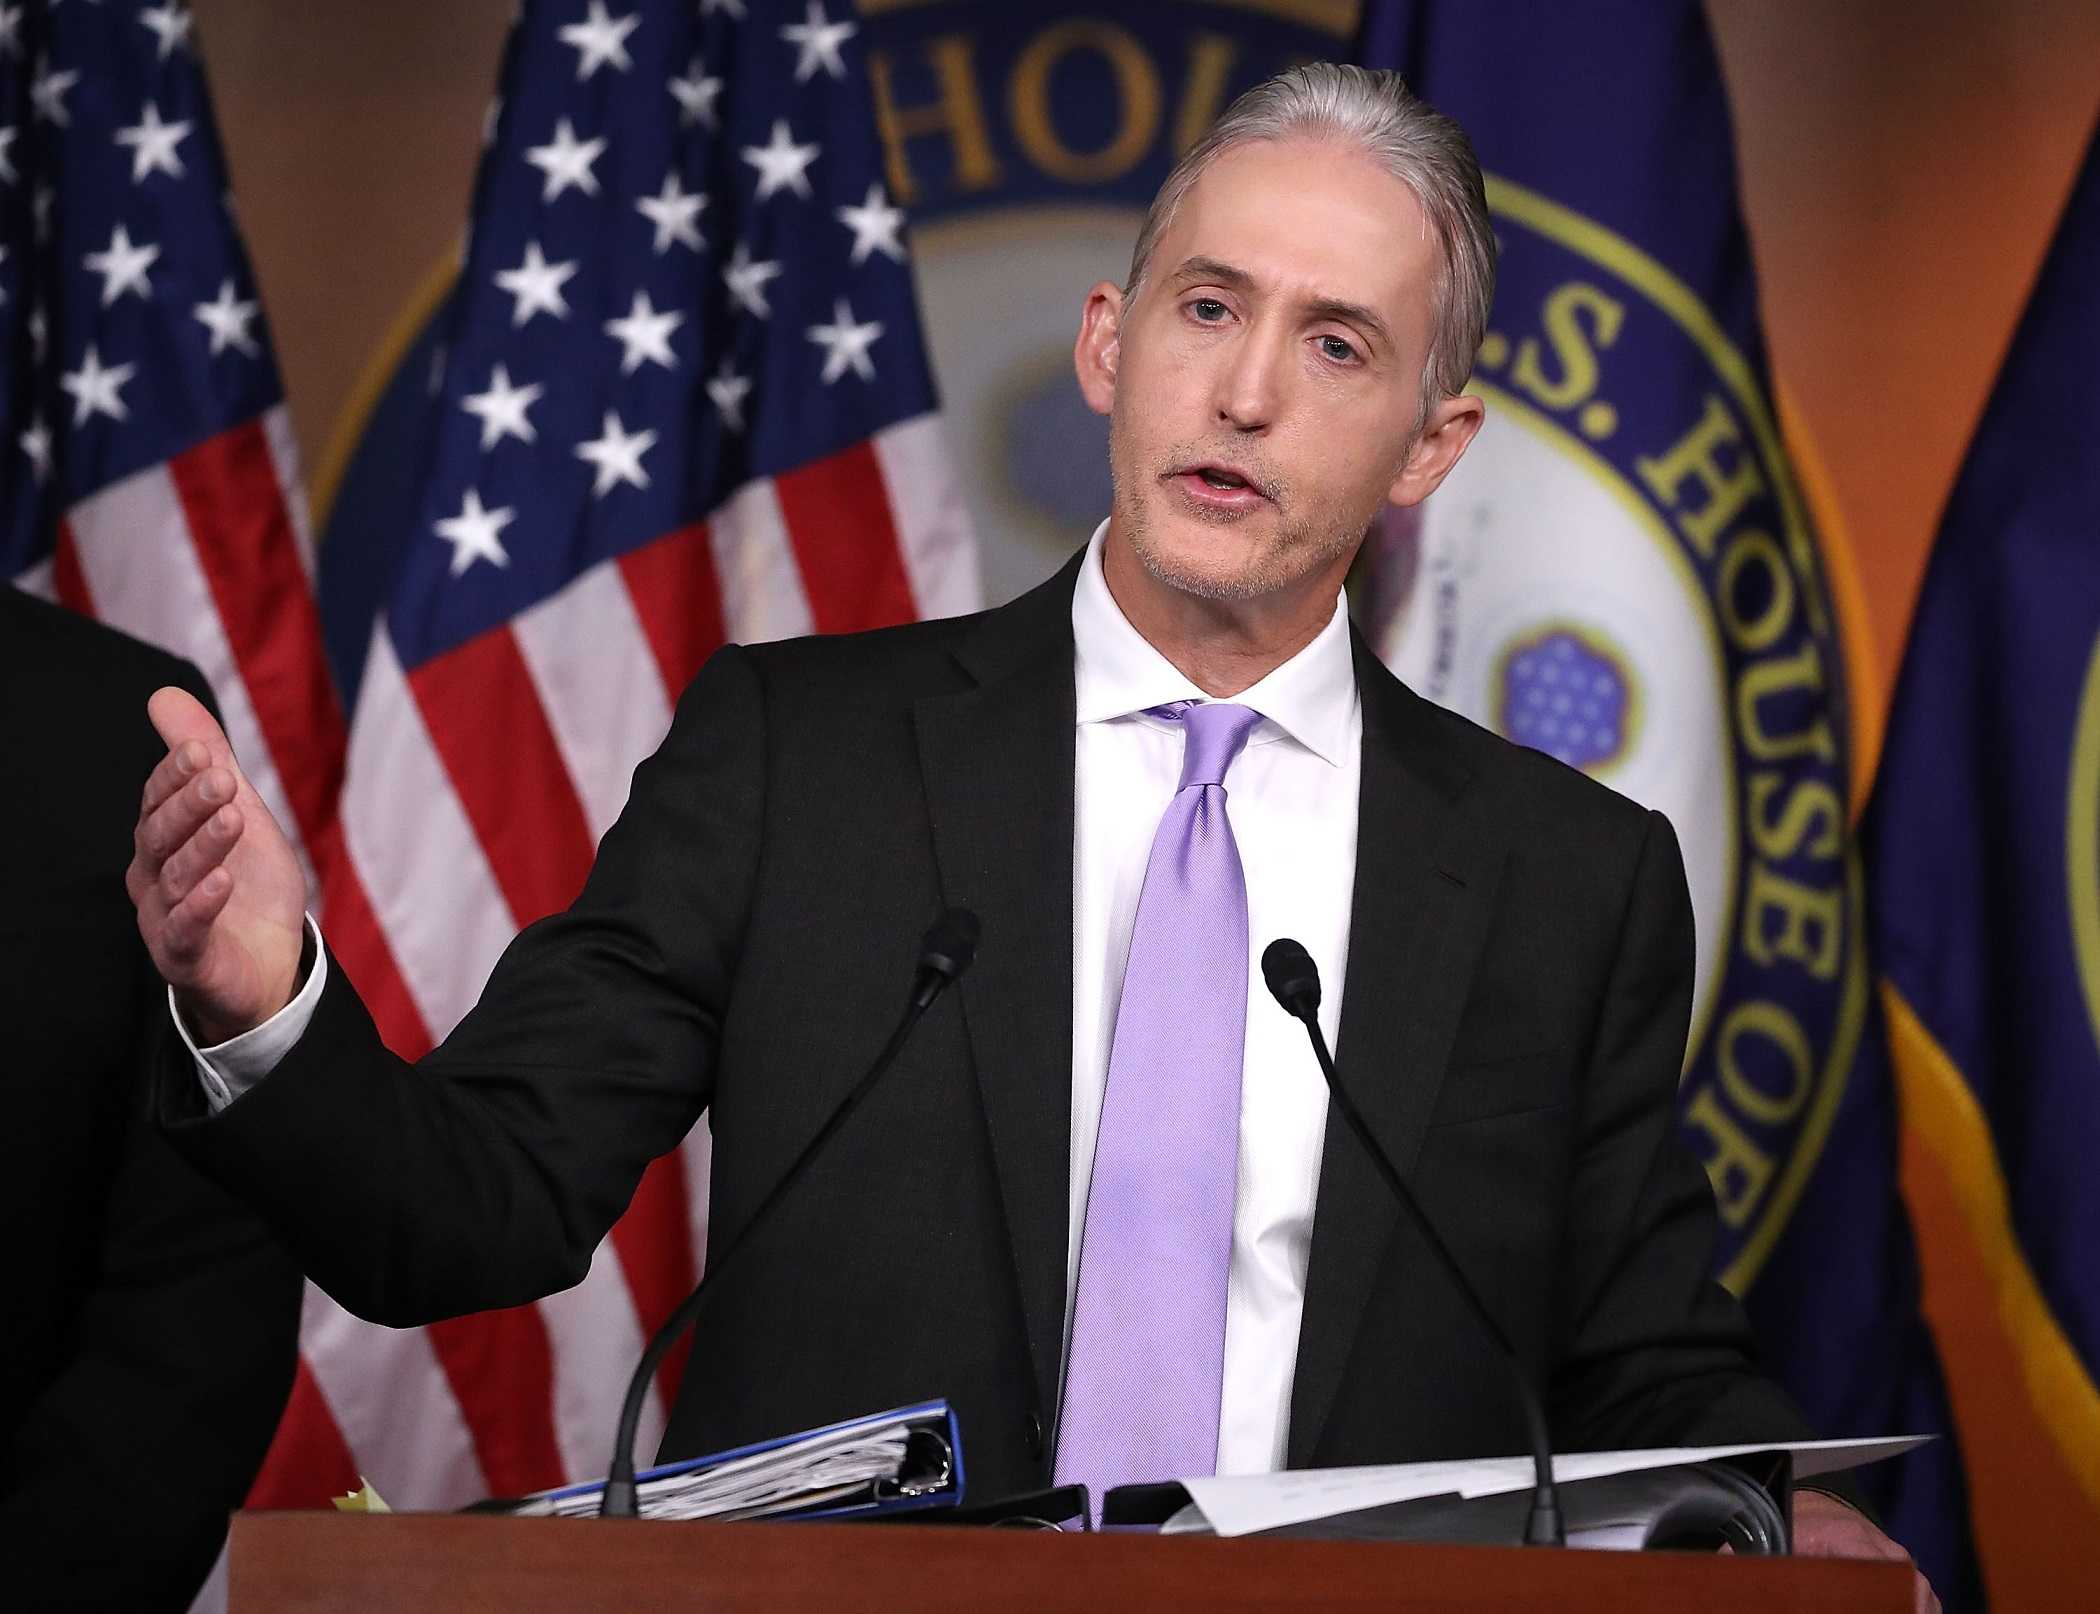 Rep. Trey Gowdy to retire; will return to law career